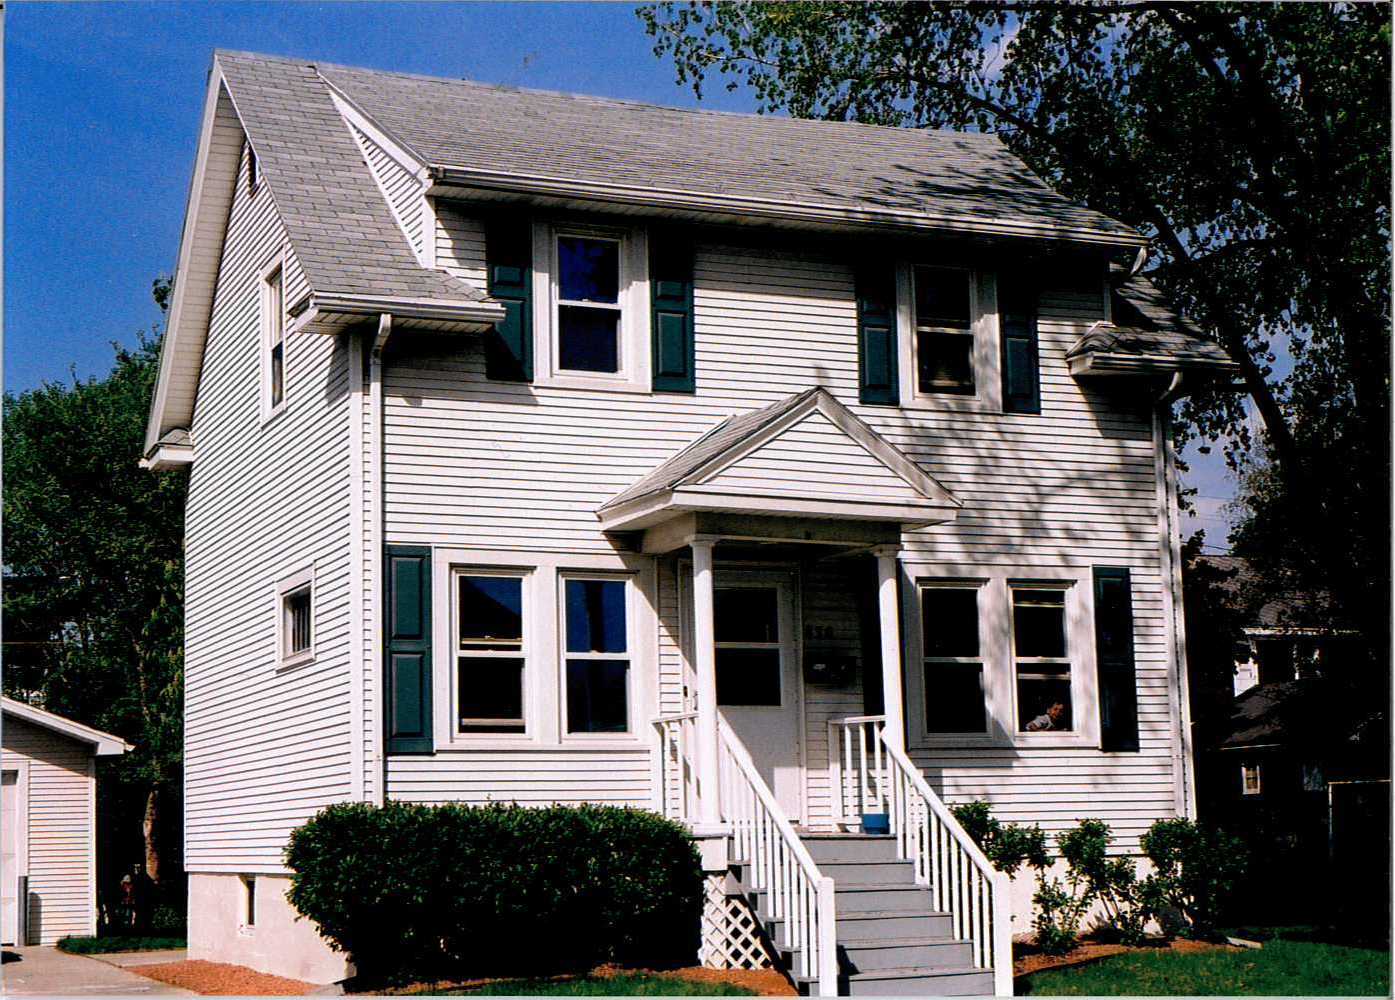 The house located at 836 Cora Street.